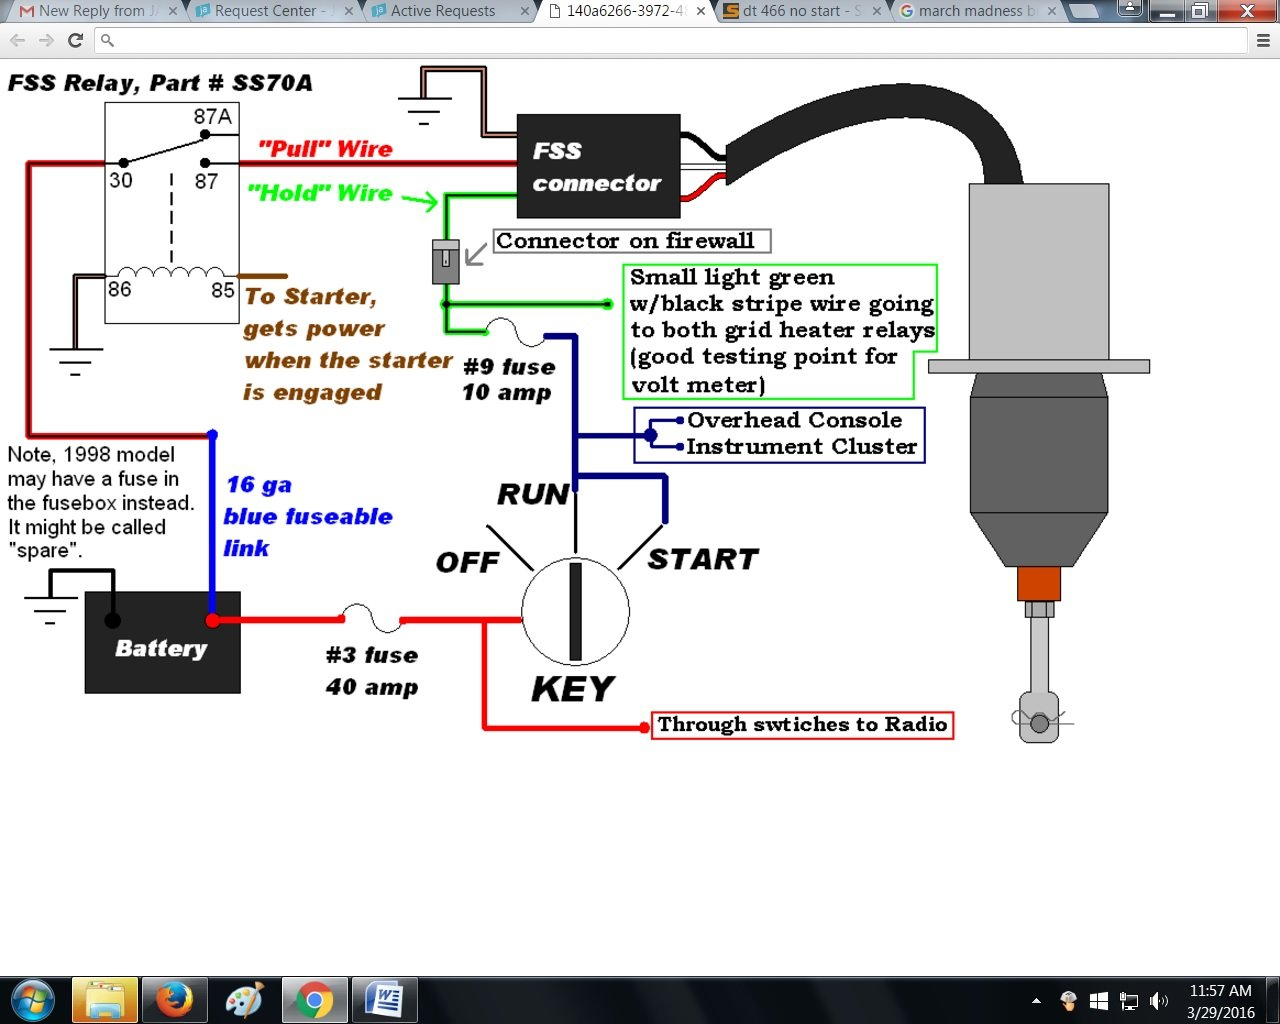 Fuel Stop Solenoid Wiring Diagram | Wiring Schematic Diagram ...  Wire Solenoid Wiring Diagram Shut Down on fireplace shut off valve diagram, 300 cummins engine diagram, isx cummins wire diagram, 12 valve cummins engine diagram,